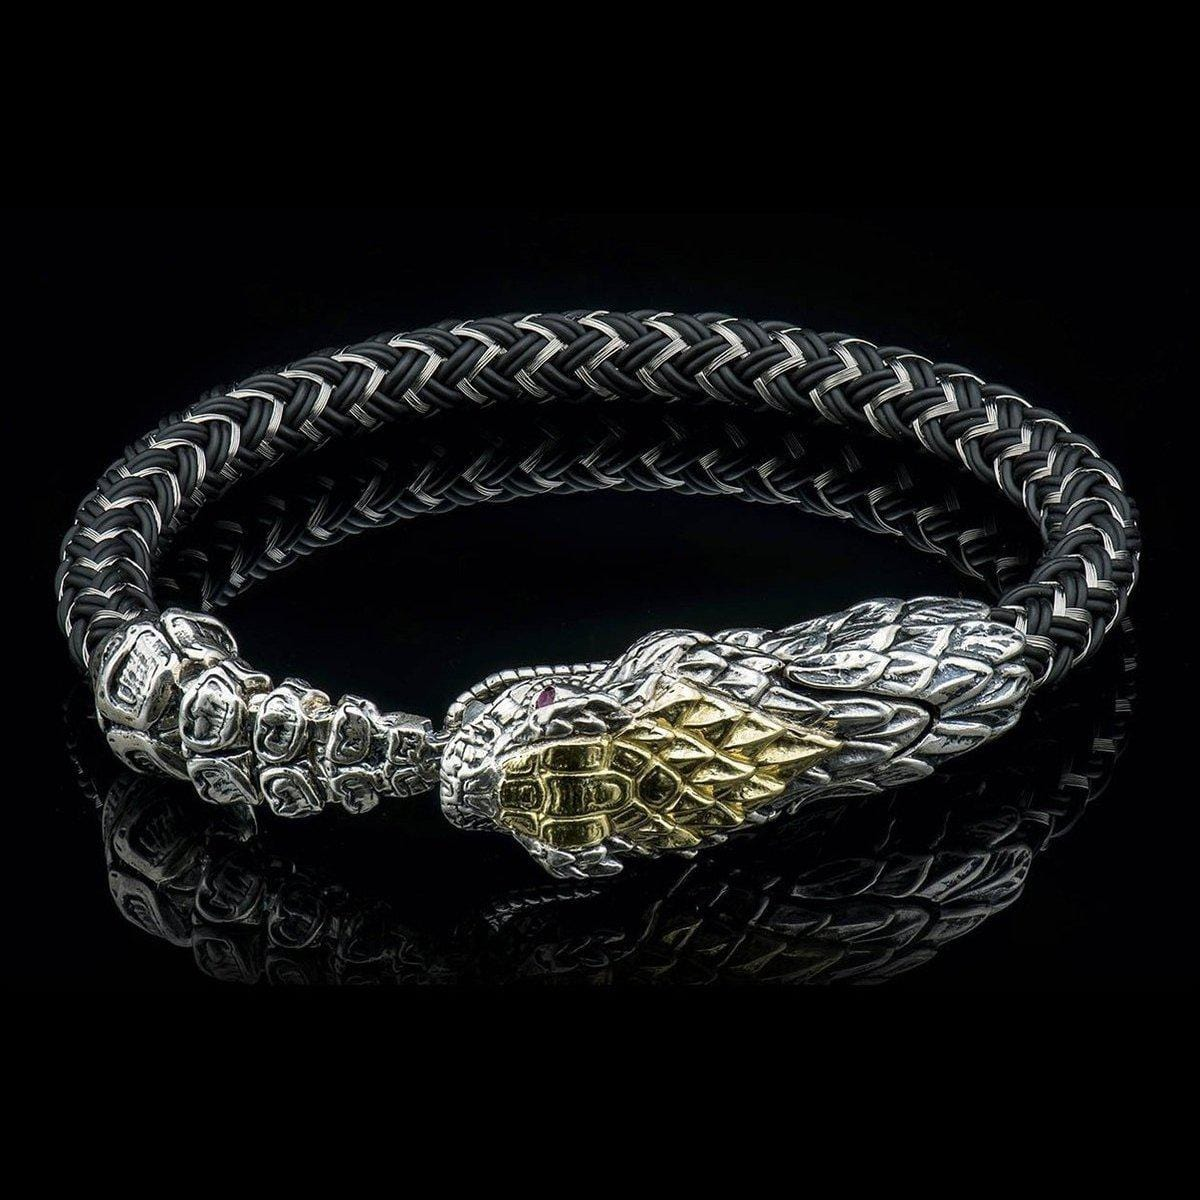 Men's Lancehead Bracelet - FL BR7 YG-William Henry-Renee Taylor Gallery